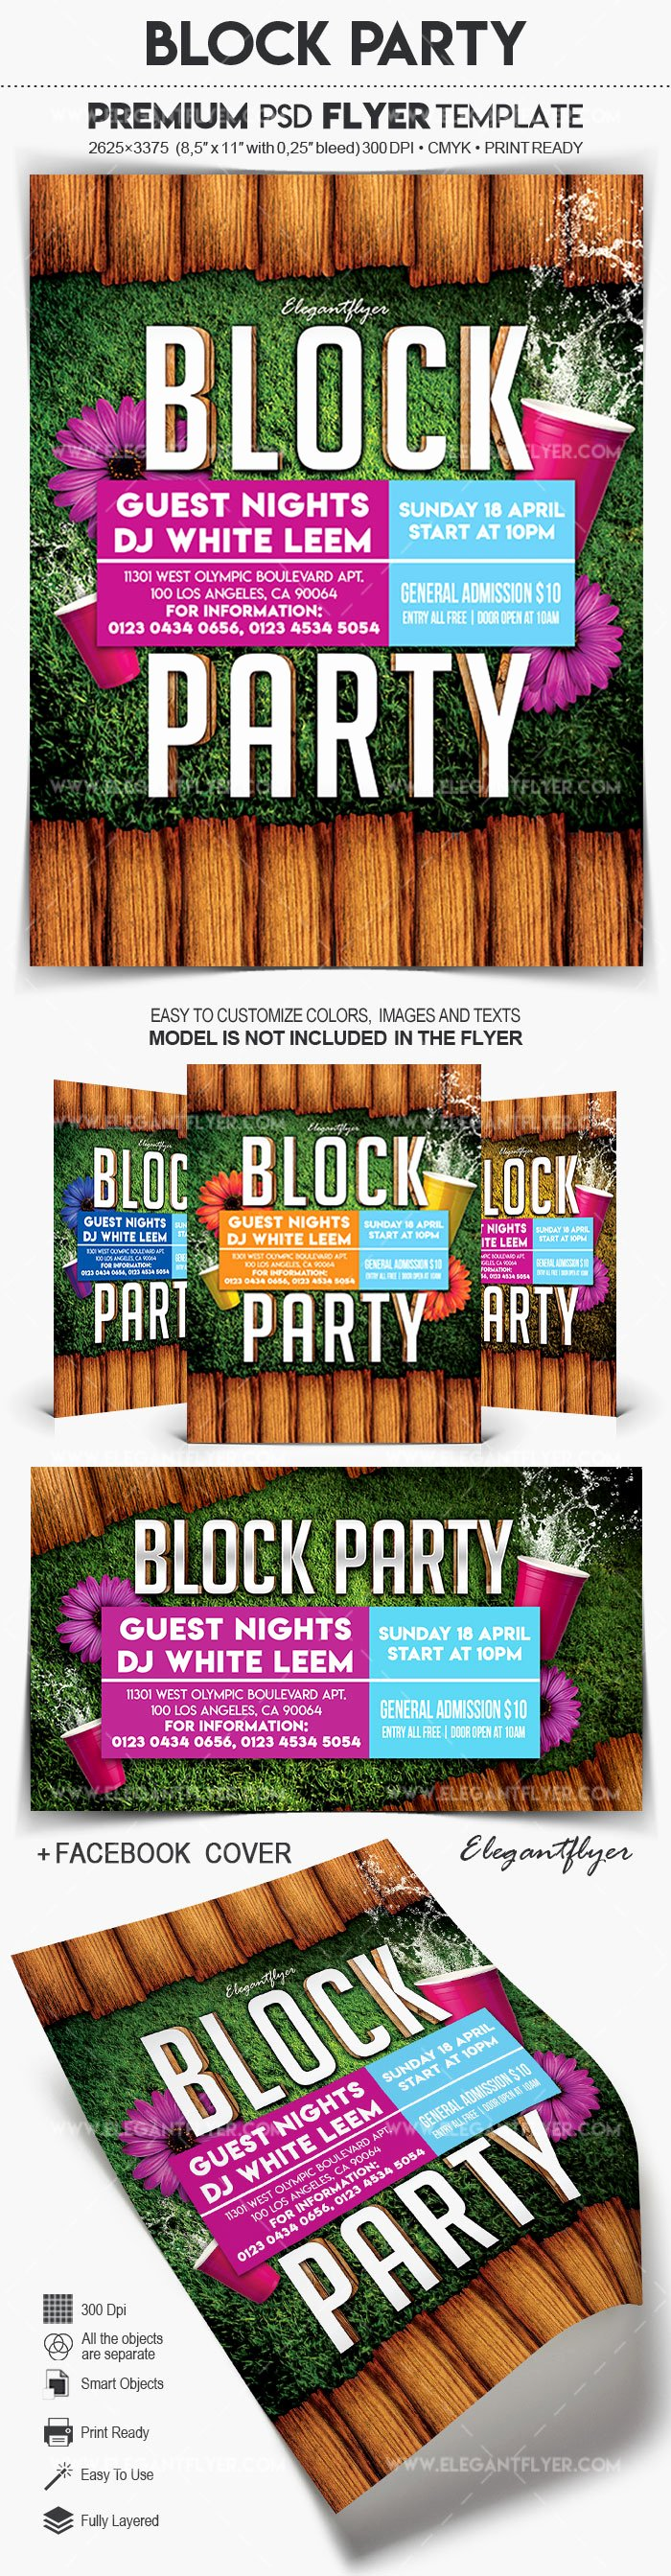 Block Party Flyer Template Free Lovely Block Party – Flyer Psd Template – by Elegantflyer